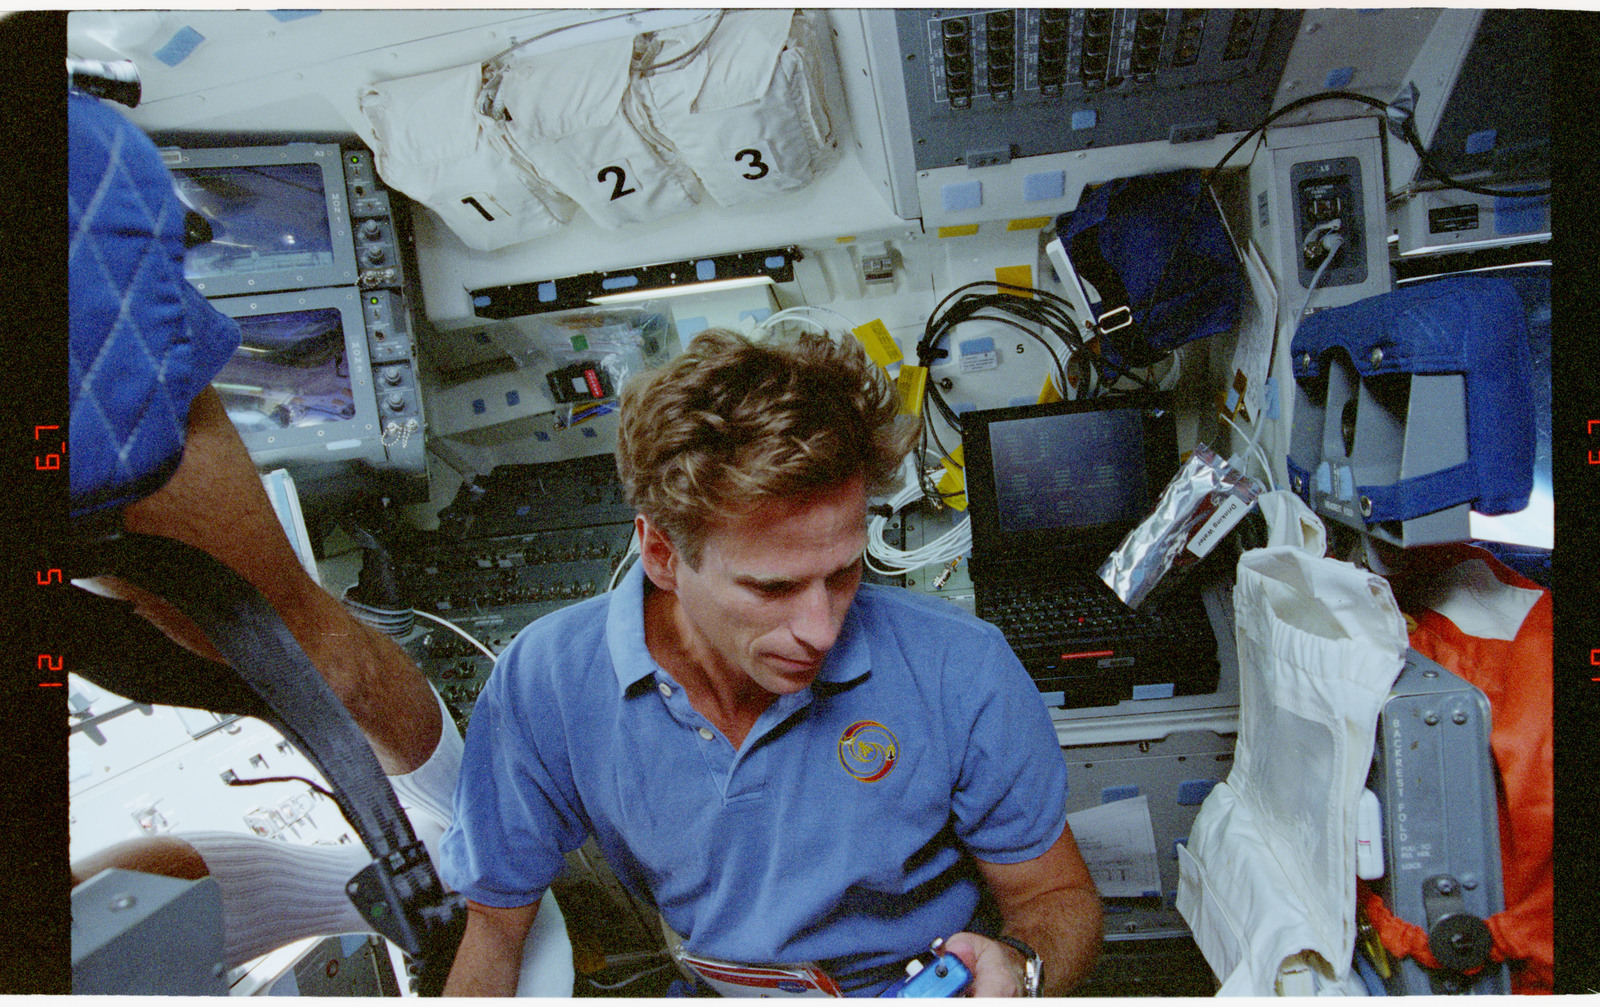 STS069-301-003 - STS-069 - Astronaut Michael L. Gernhardt on forward flight deck